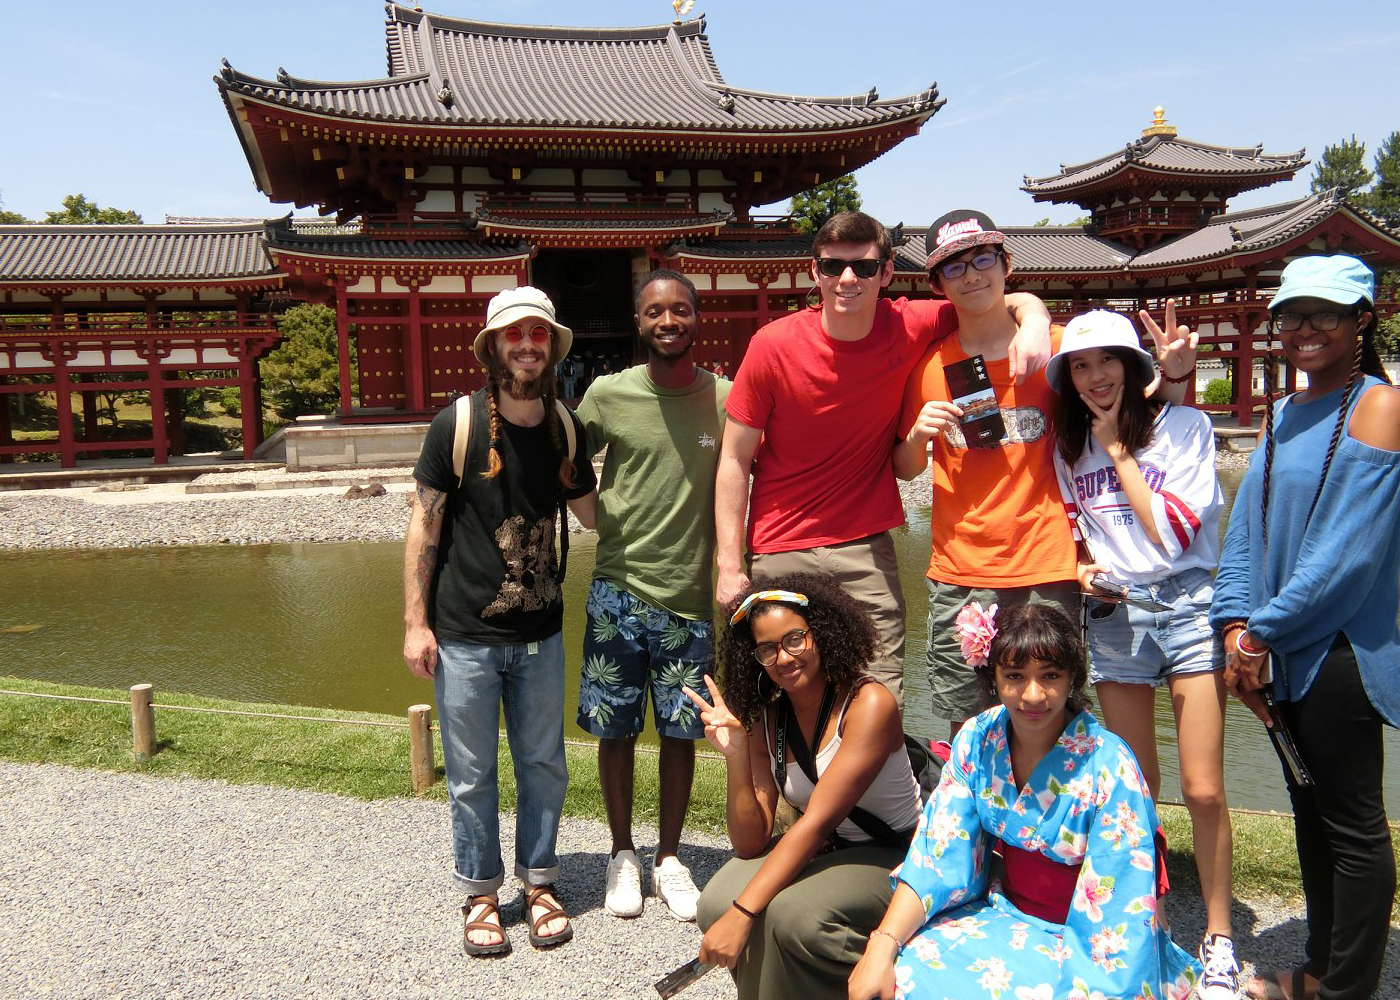 Students gathered on their trip to Japan